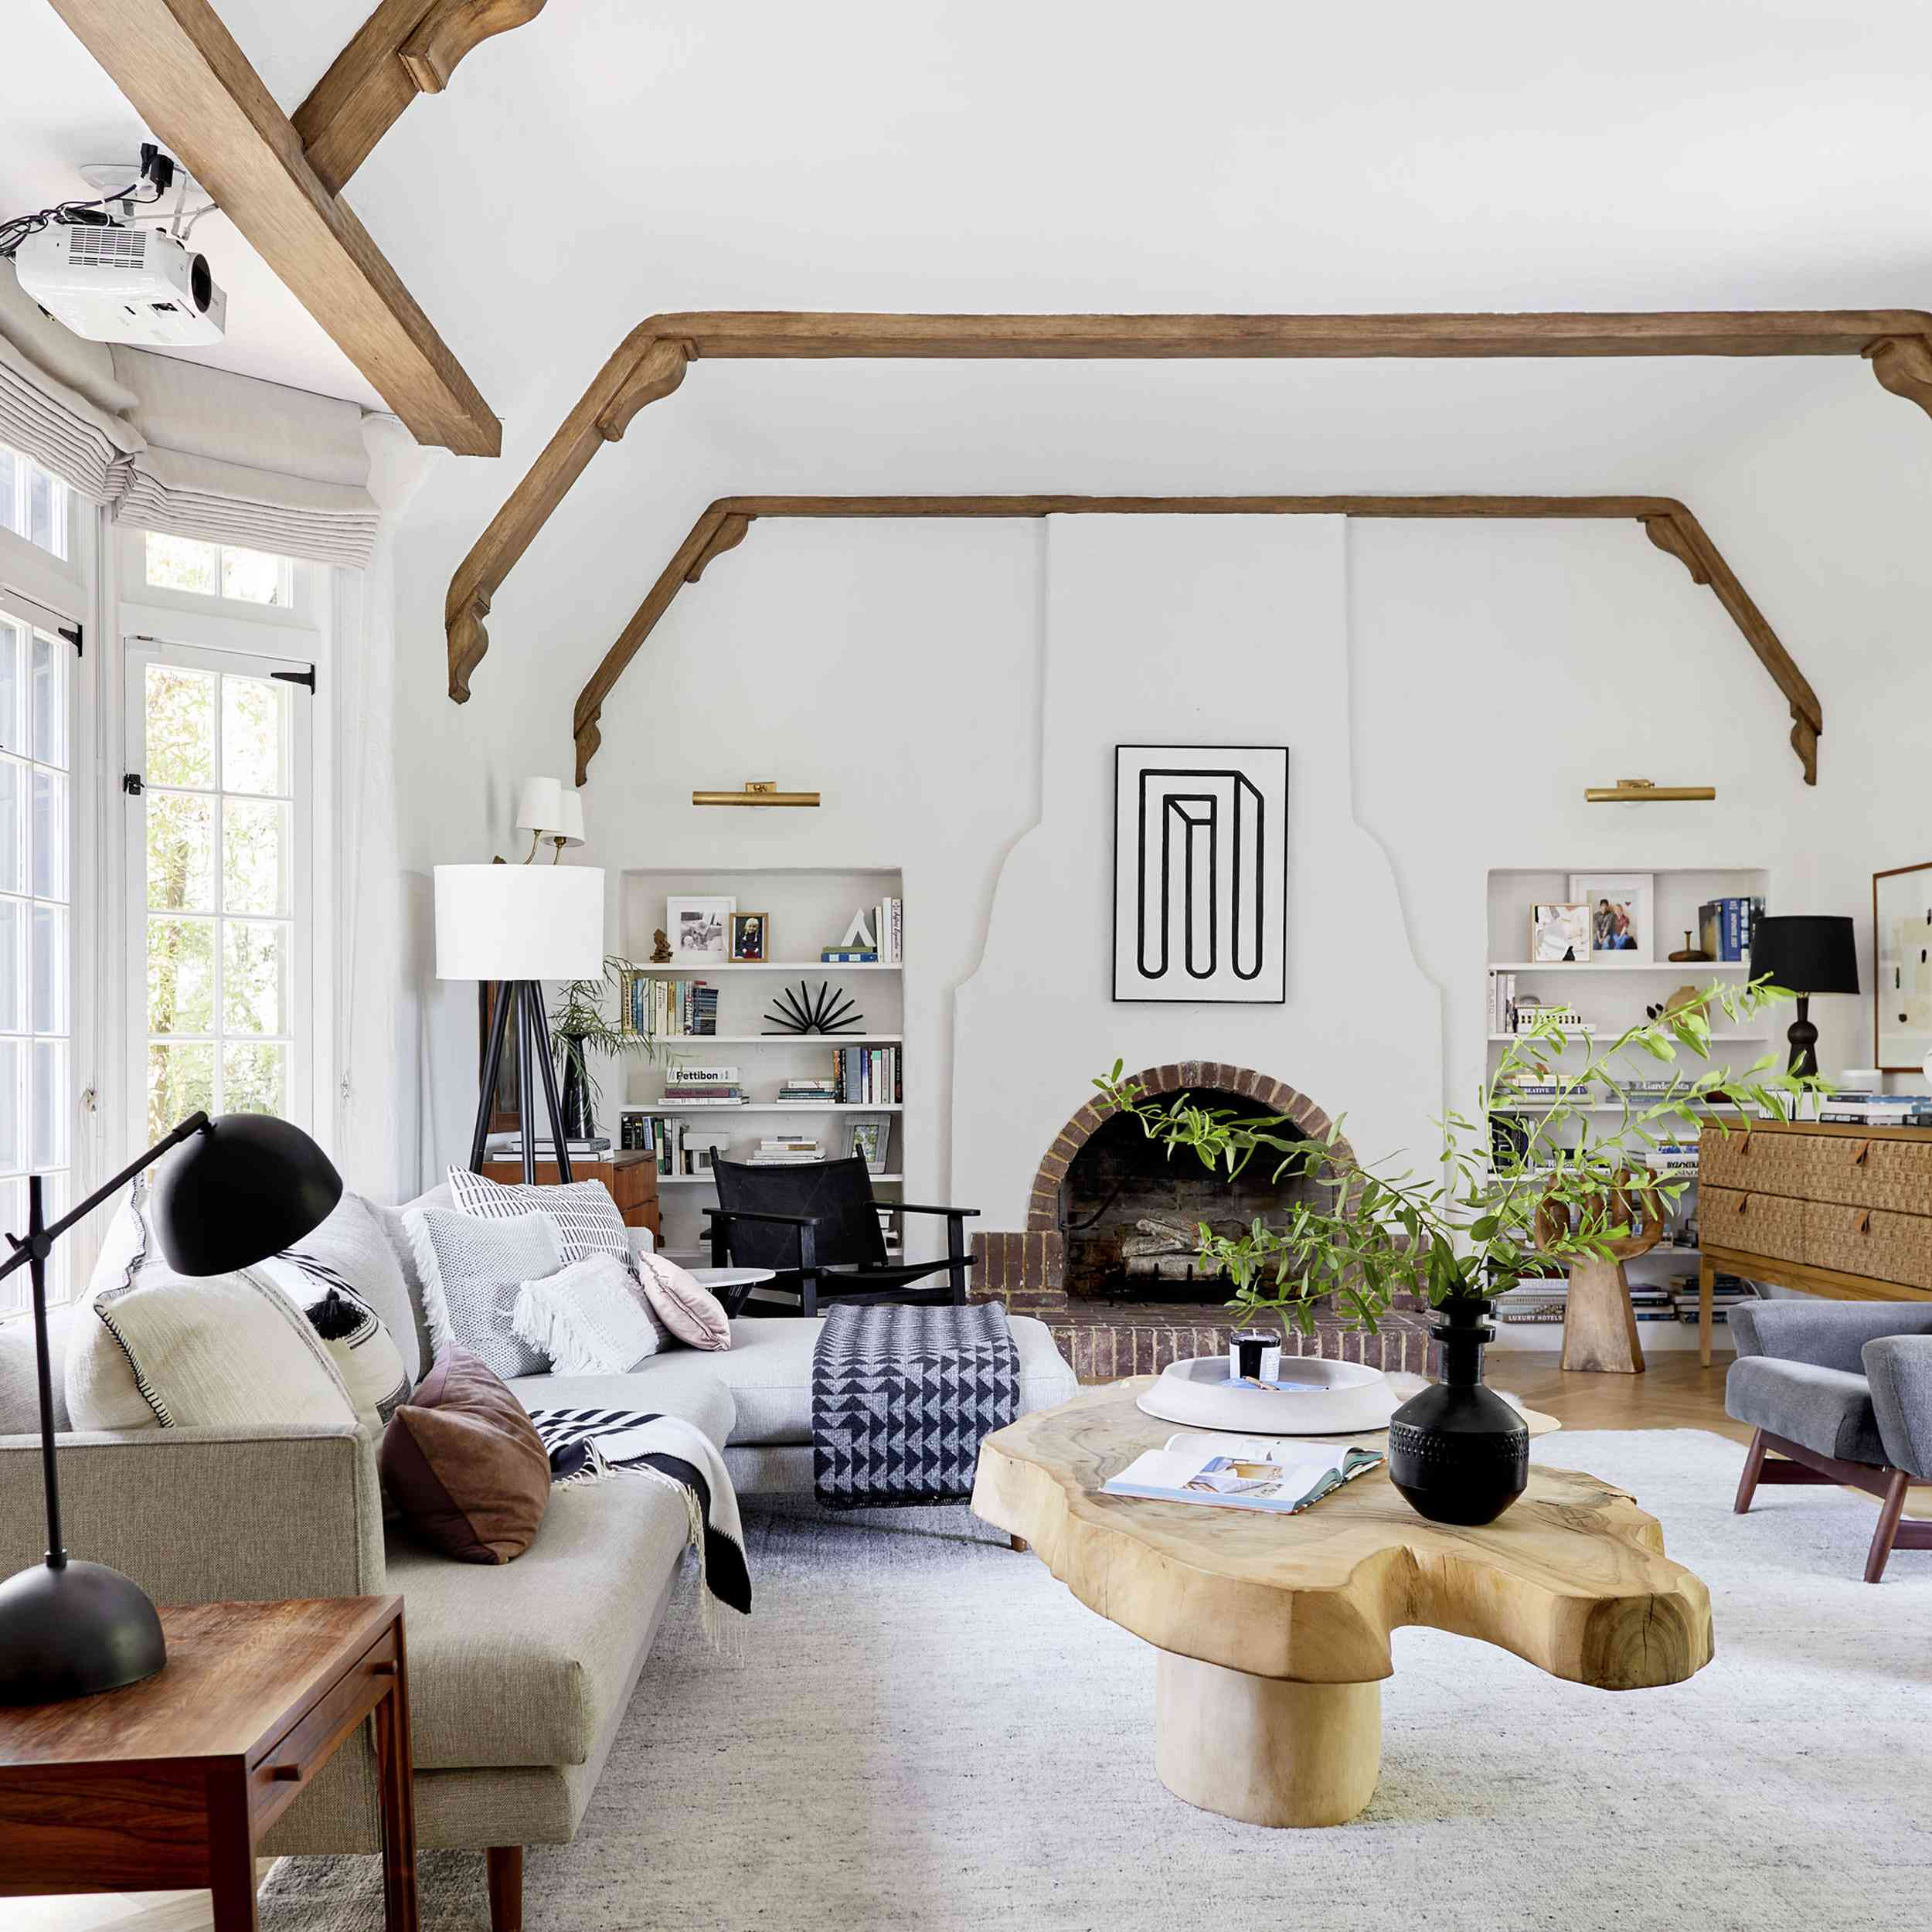 12+ Mid Century Modern Farmhouse Living Room